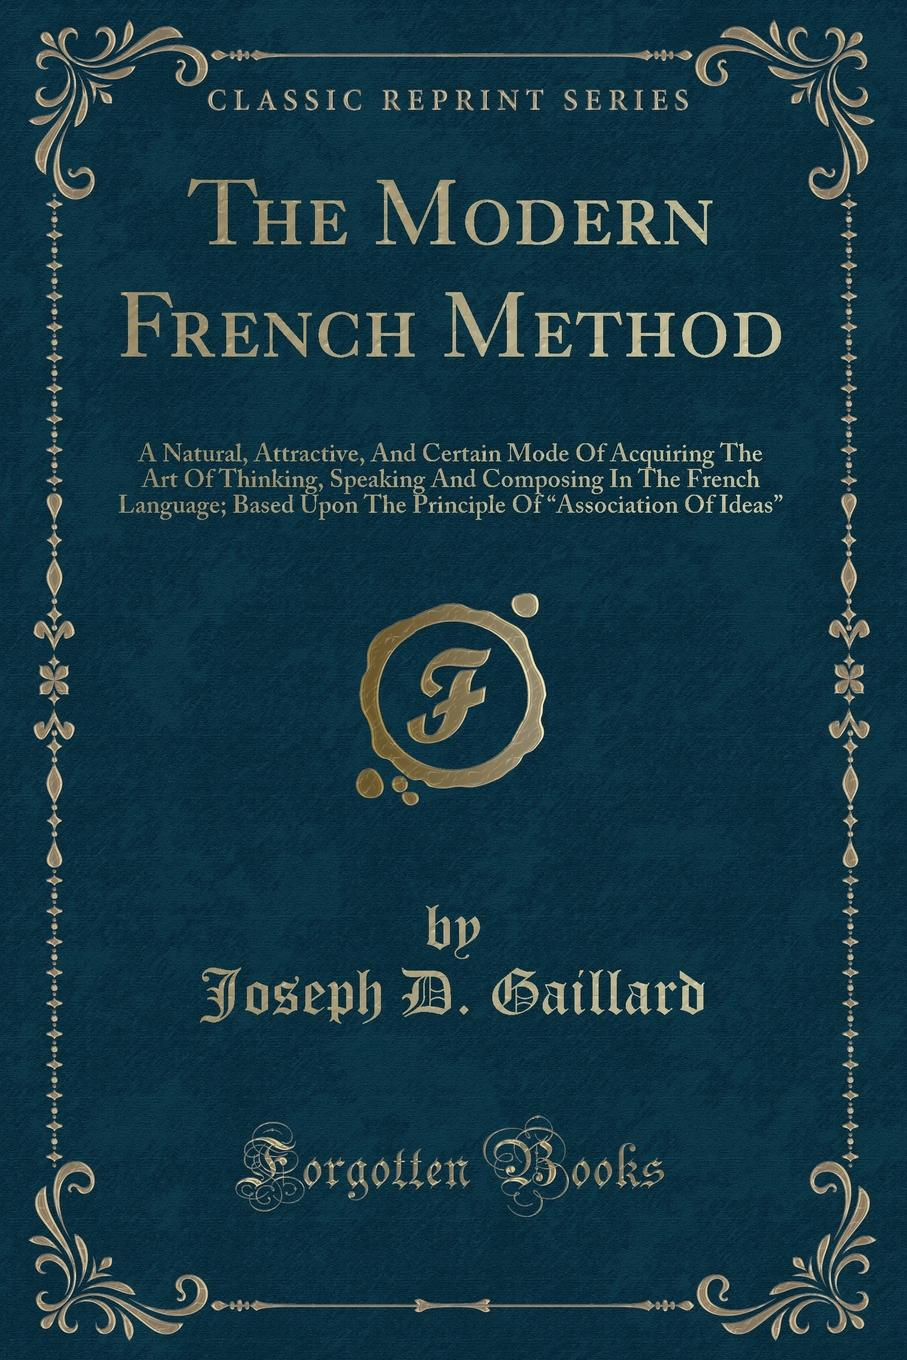 Joseph D. Gaillard The Modern French Method. A Natural, Attractive, And Certain Mode Of Acquiring The Art Of Thinking, Speaking And Composing In The French Language; Based Upon The Principle Of Association Of Ideas (Classic Reprint) louis fasquelle a new method of learning the french language embracing both the analytic and synthetic modes of instruction being a plain and practical way of acquiring the art of reading speaking and composing french